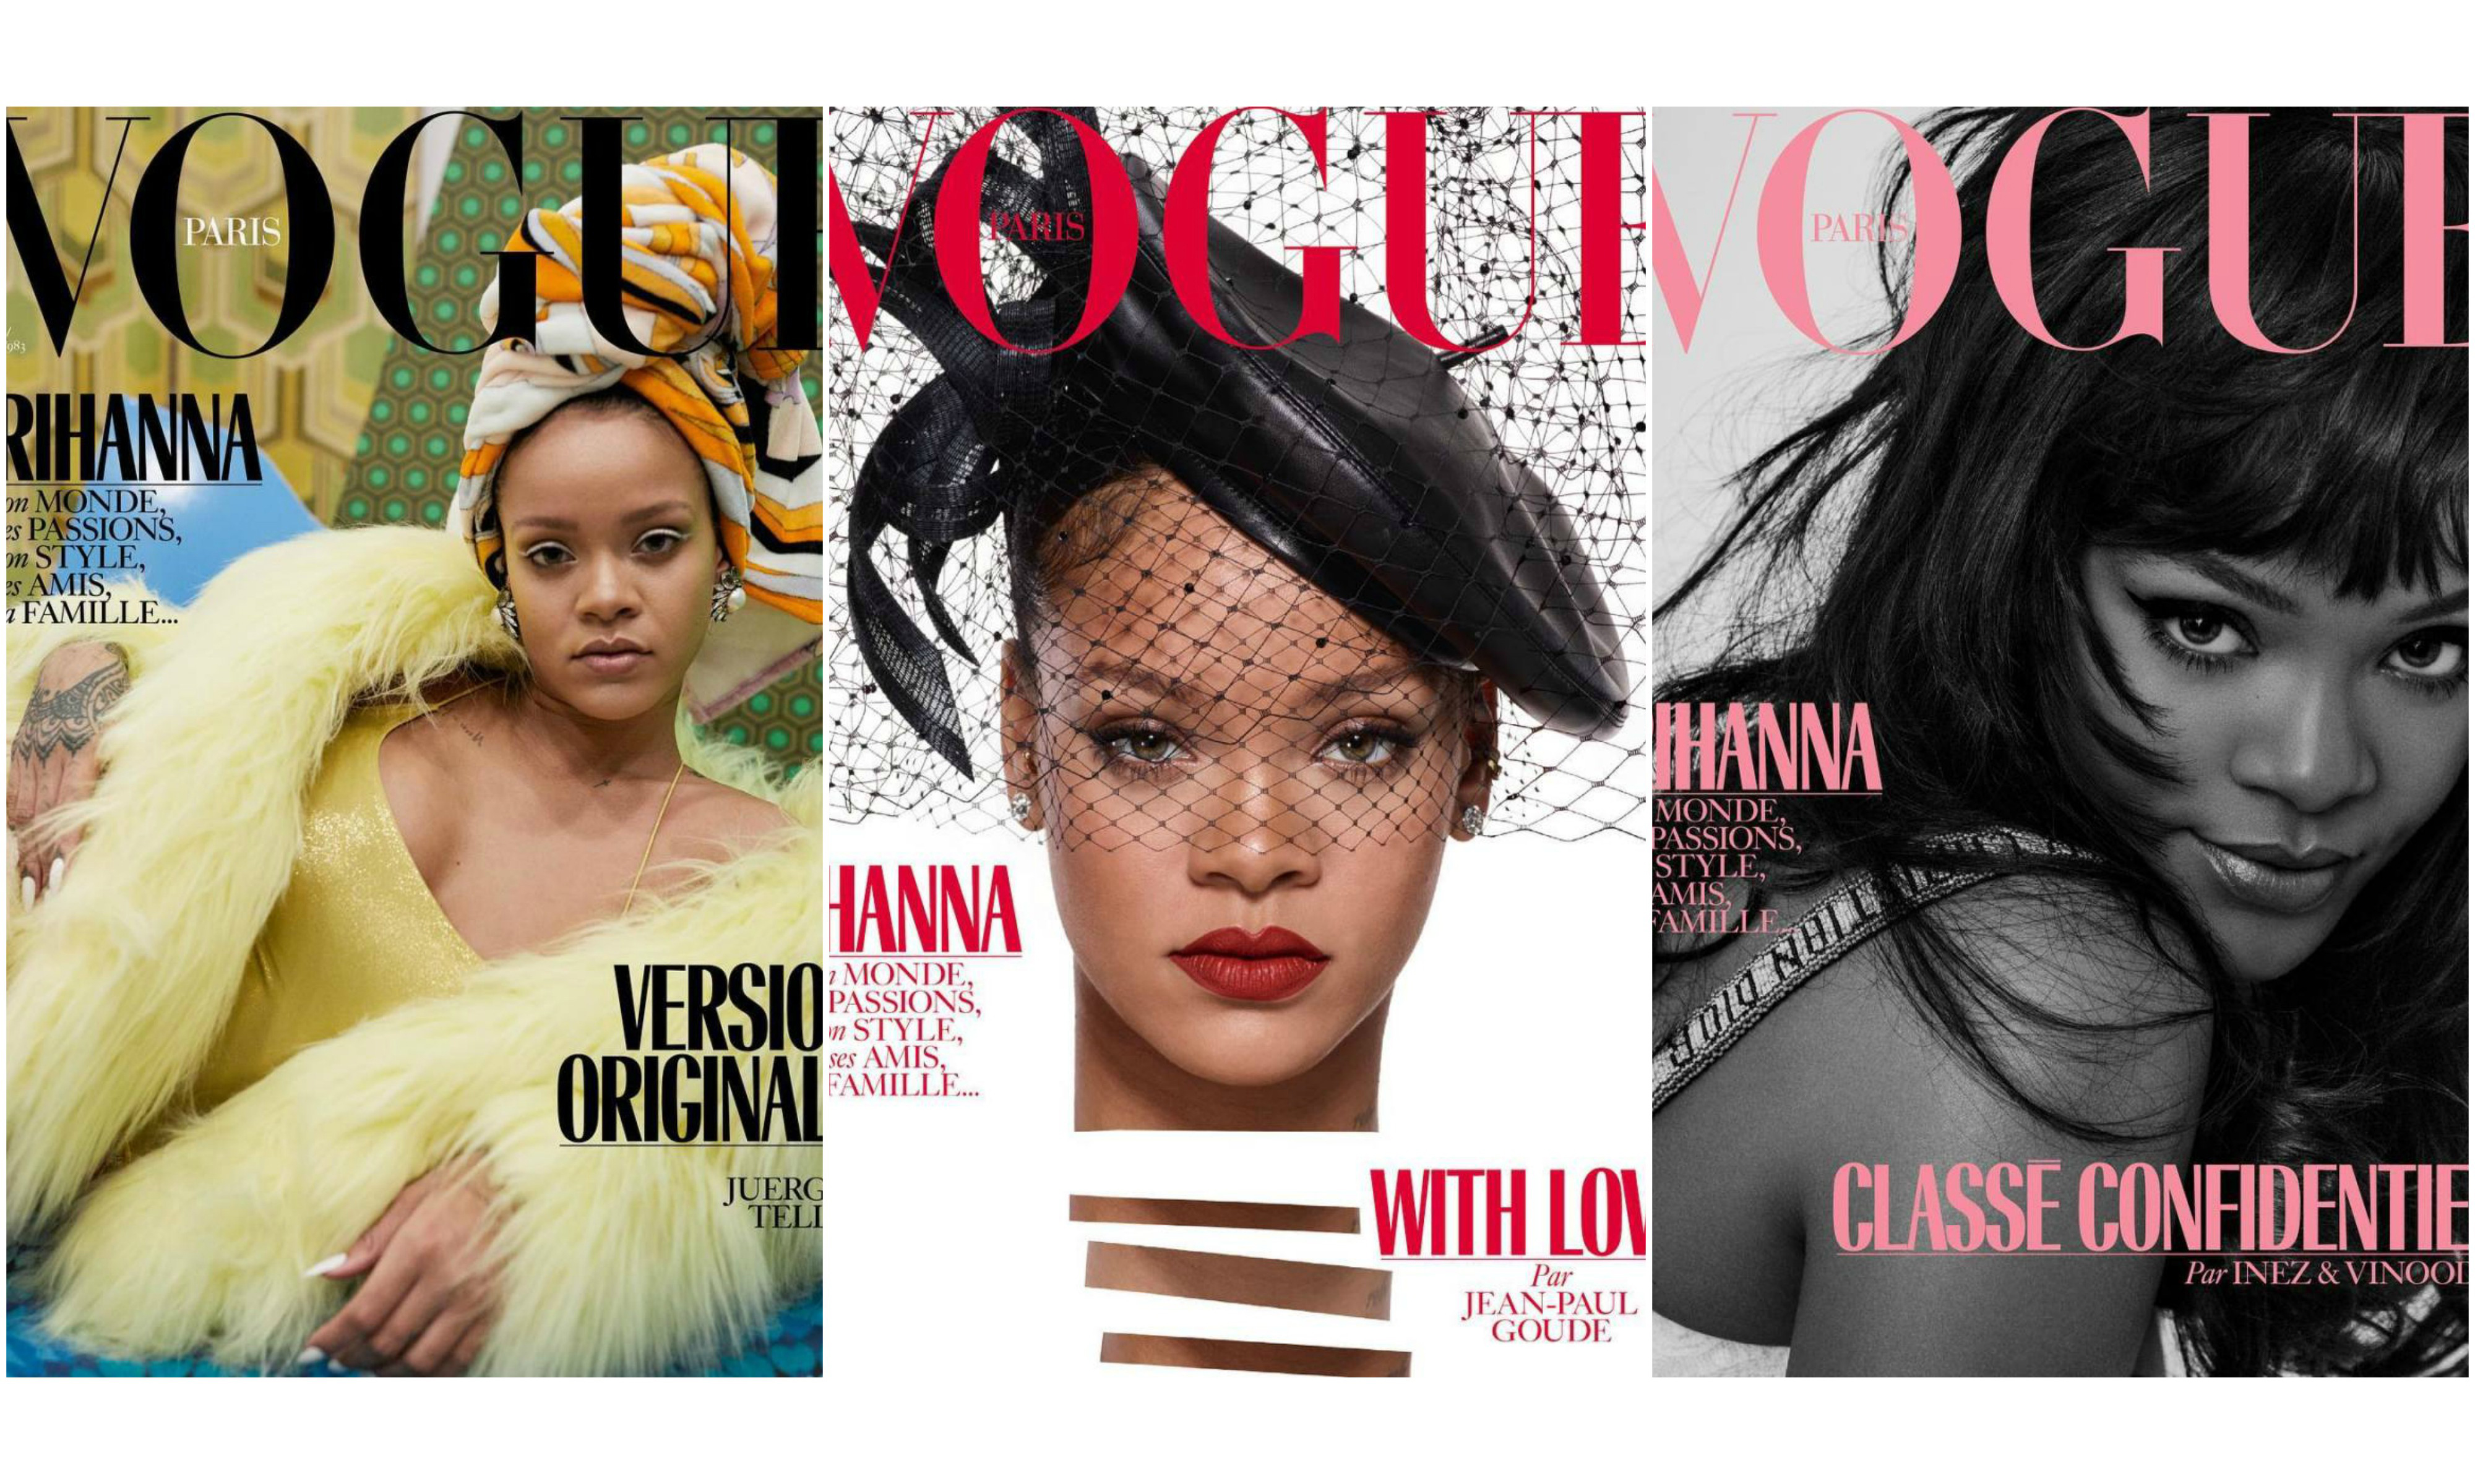 Rihanna 登上《Vouge Paris》封面